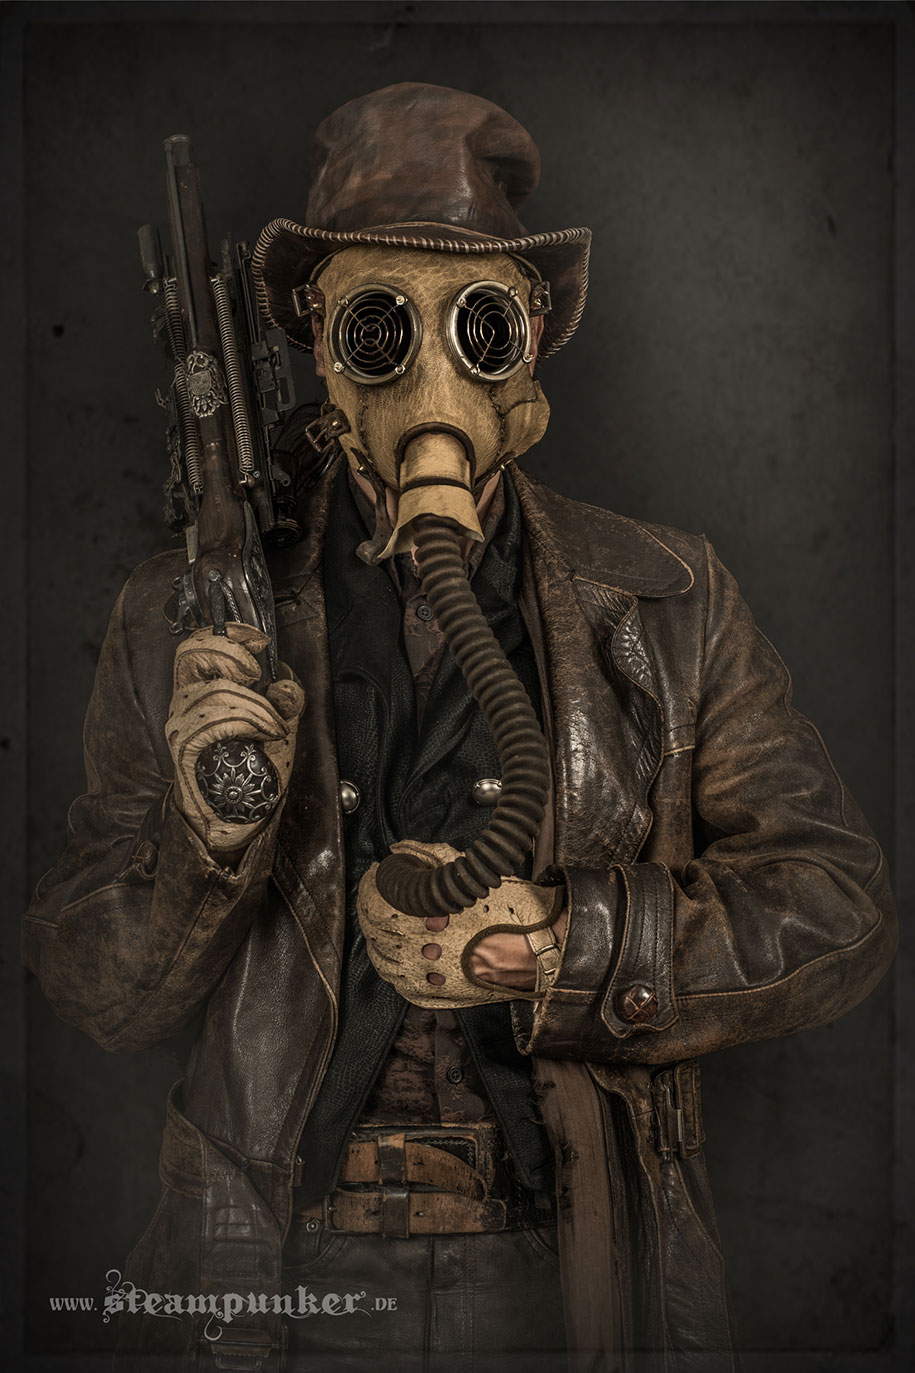 cosplay-costumes-steampunk-art-armor-clothing-alexander-schlesier-6